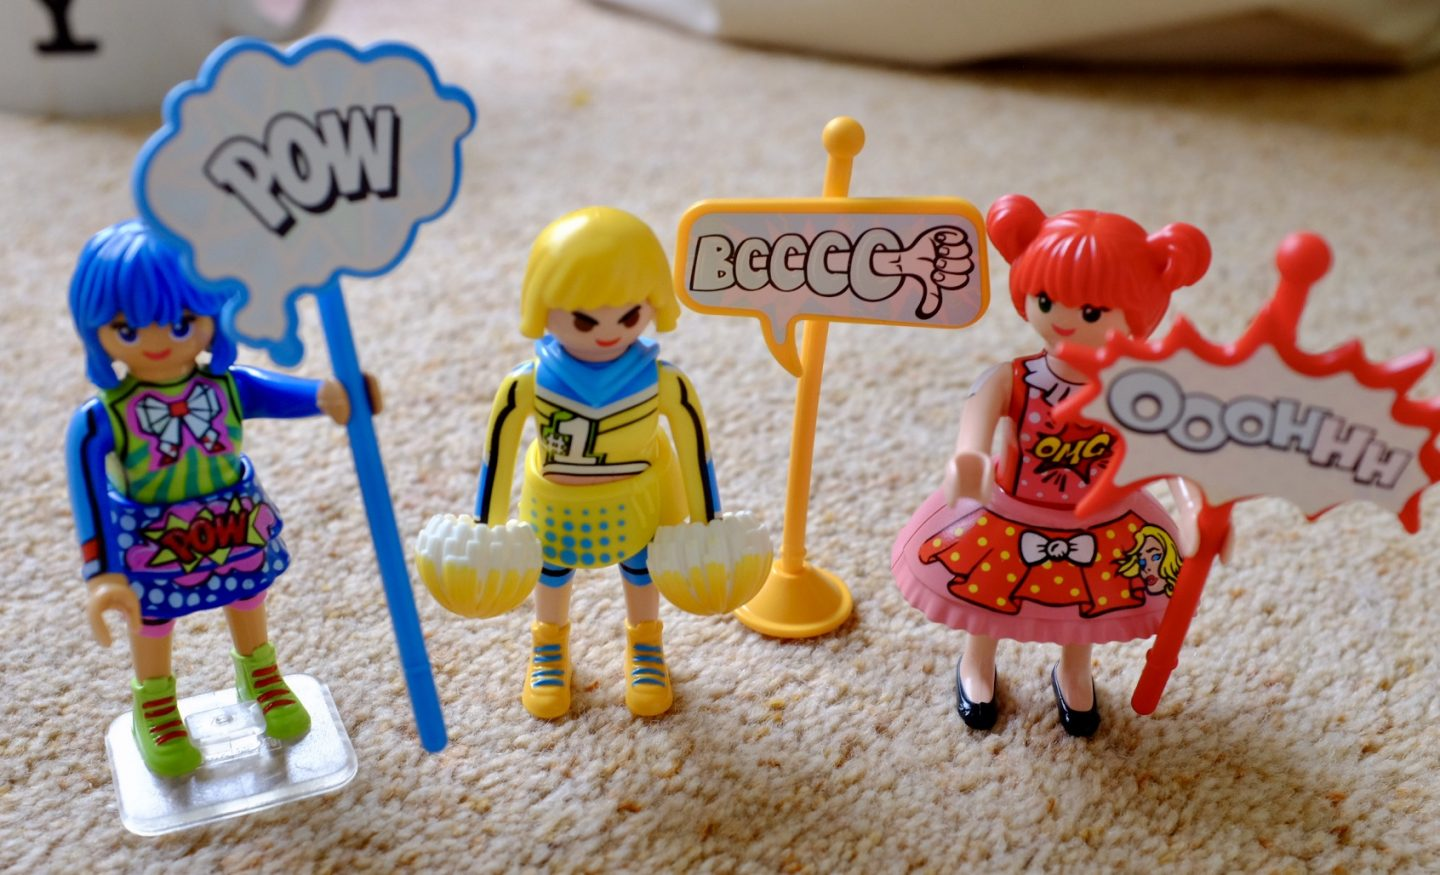 Playmobil Ever Dreamerz characters